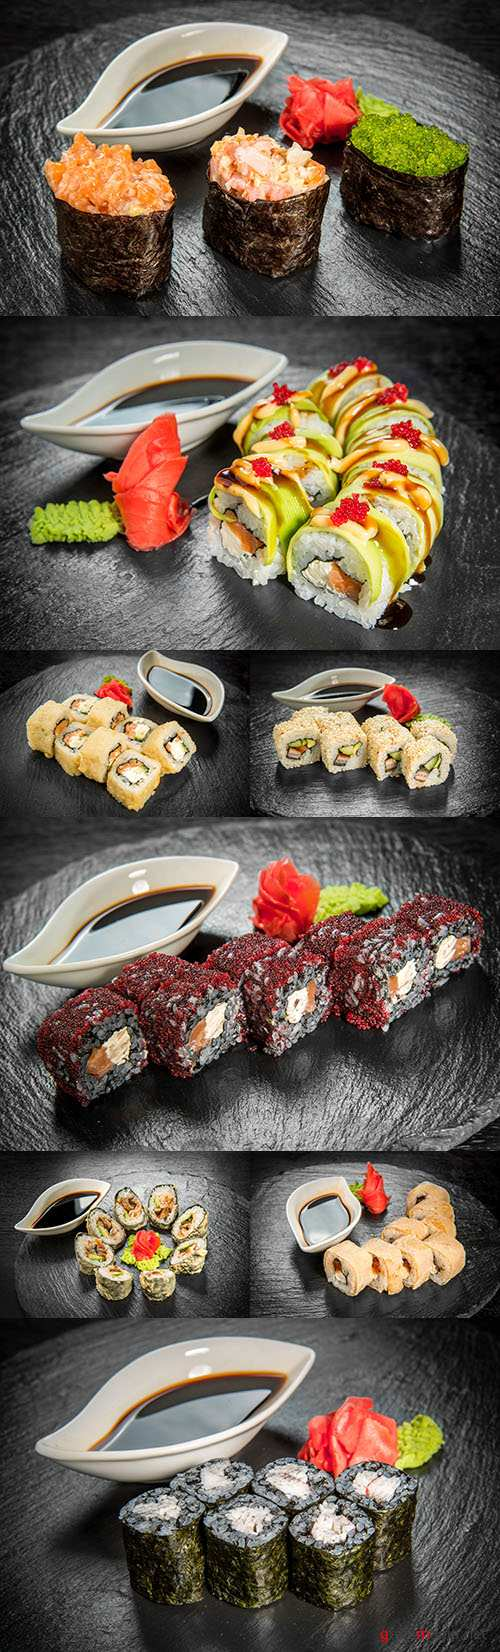 Japanese cuisine with fresh seafood and sauce